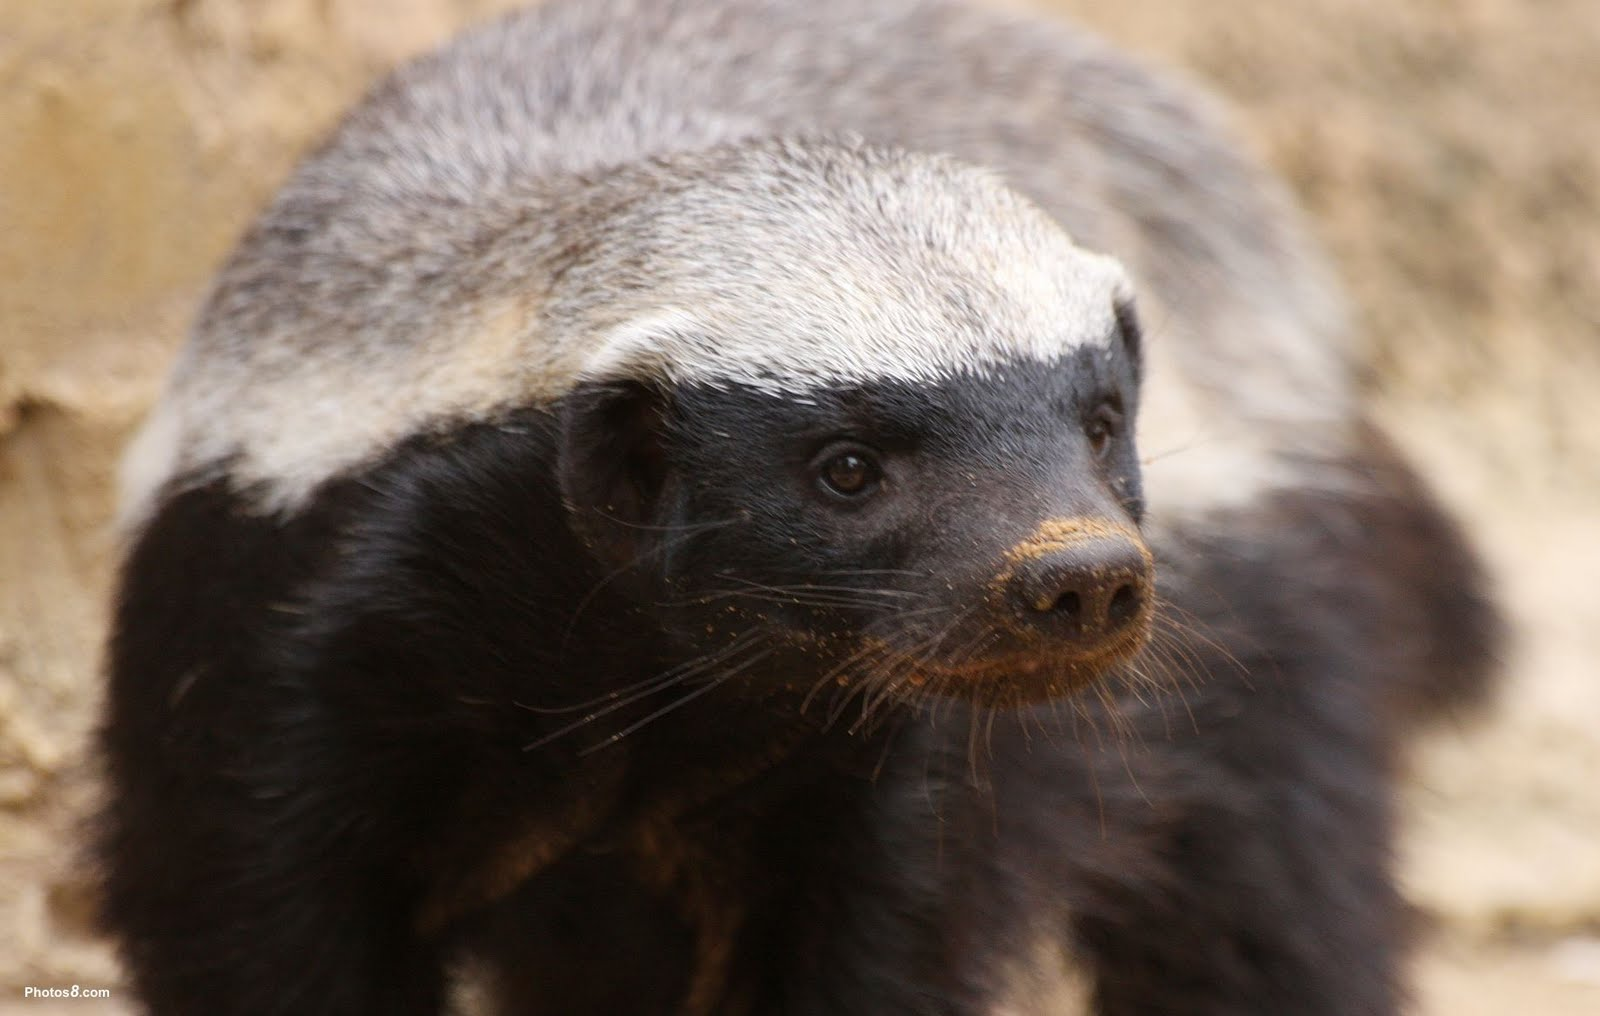 Is there anything the Honey Badger does care about ...